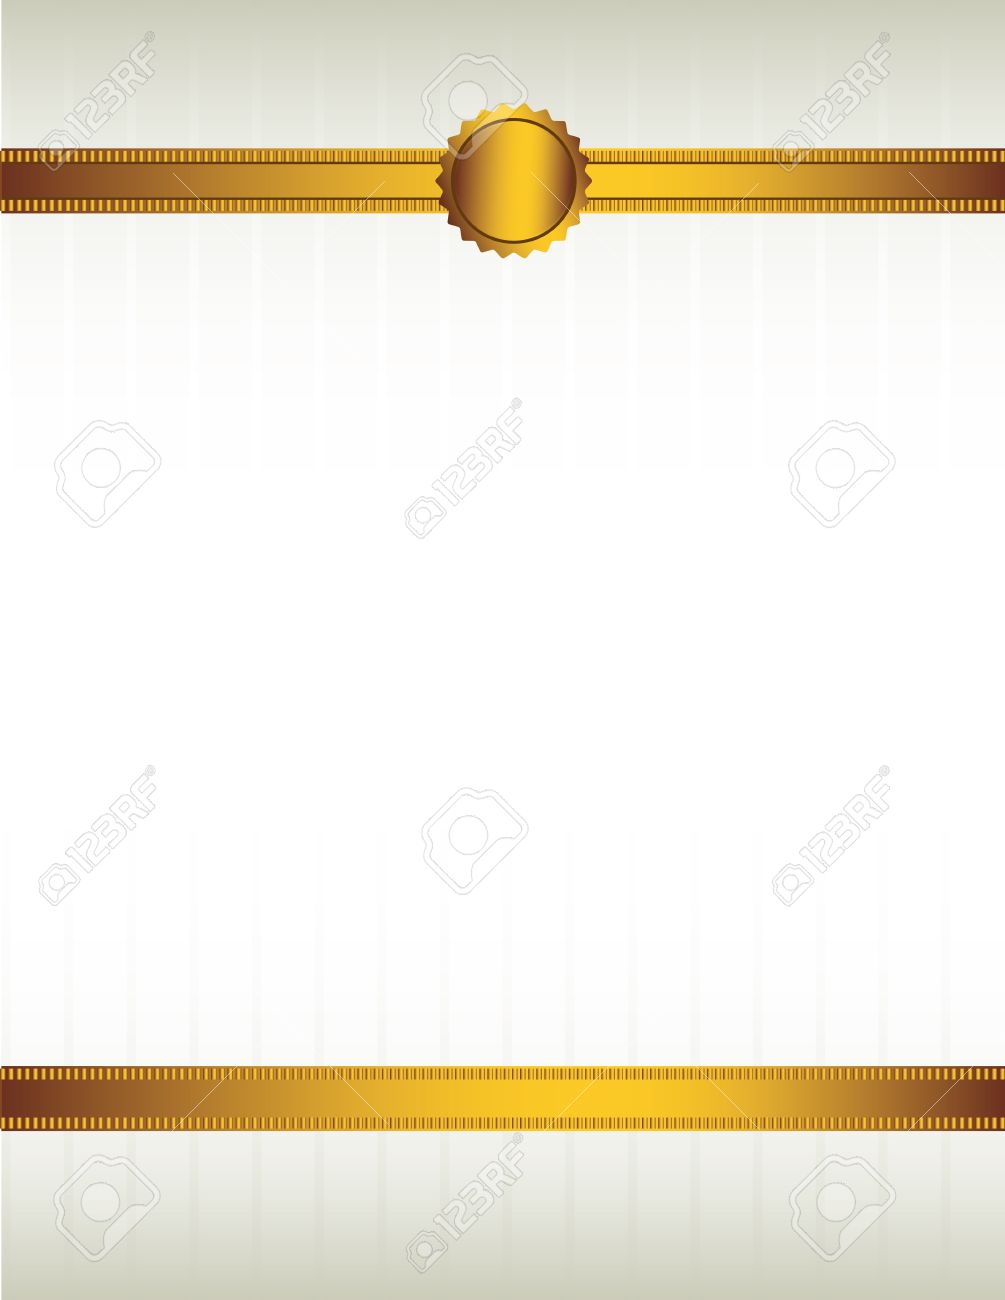 Gold ribbon and with a seal lining the top and bottom of a striped cream colored background Stock Vector - 7315163